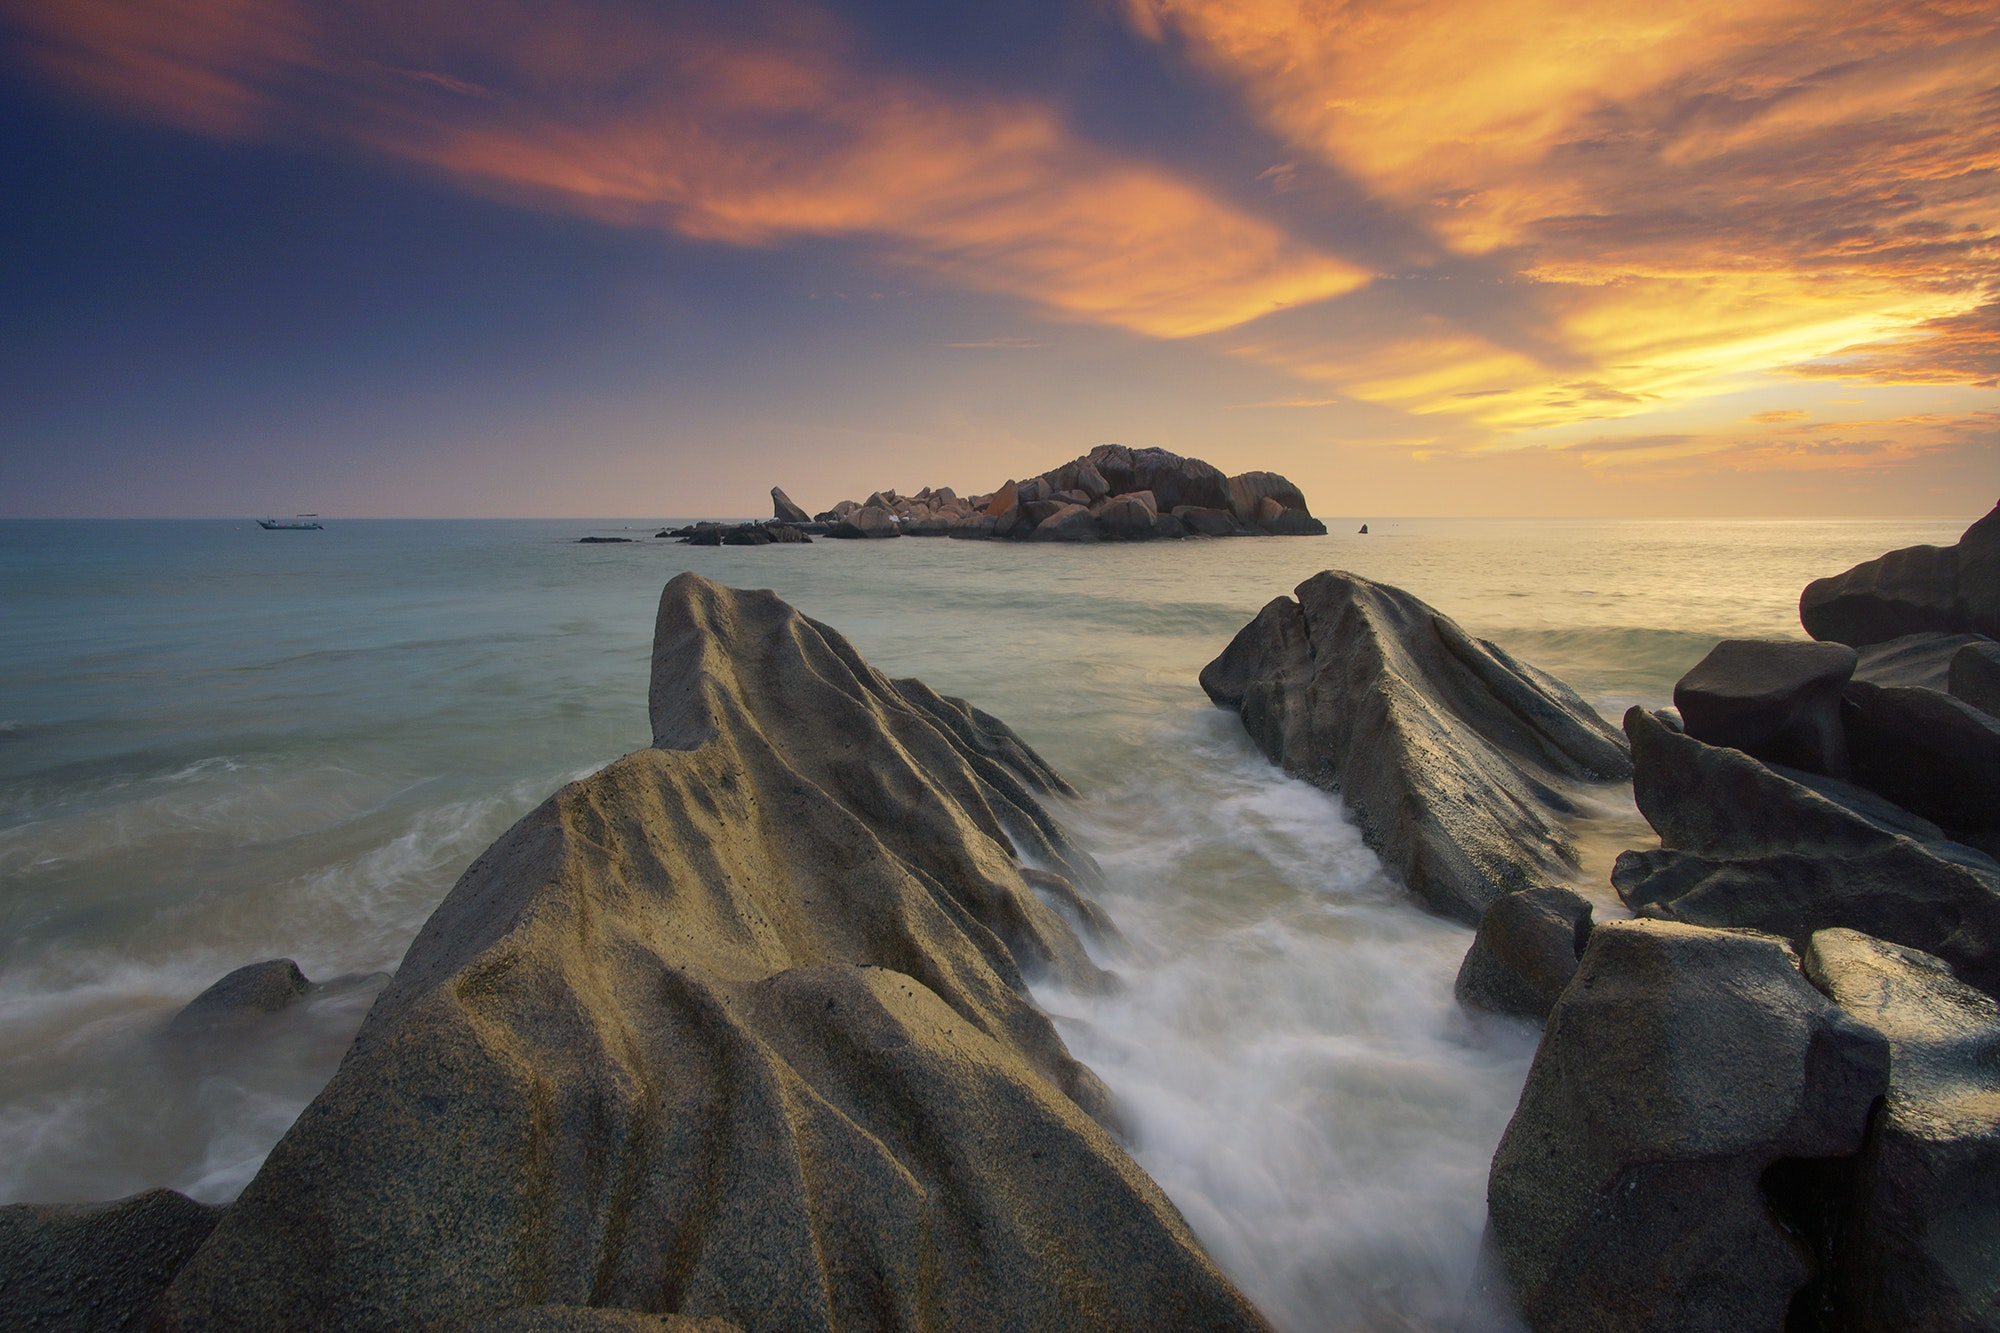 Gray rock formation near body of water during sunset photo